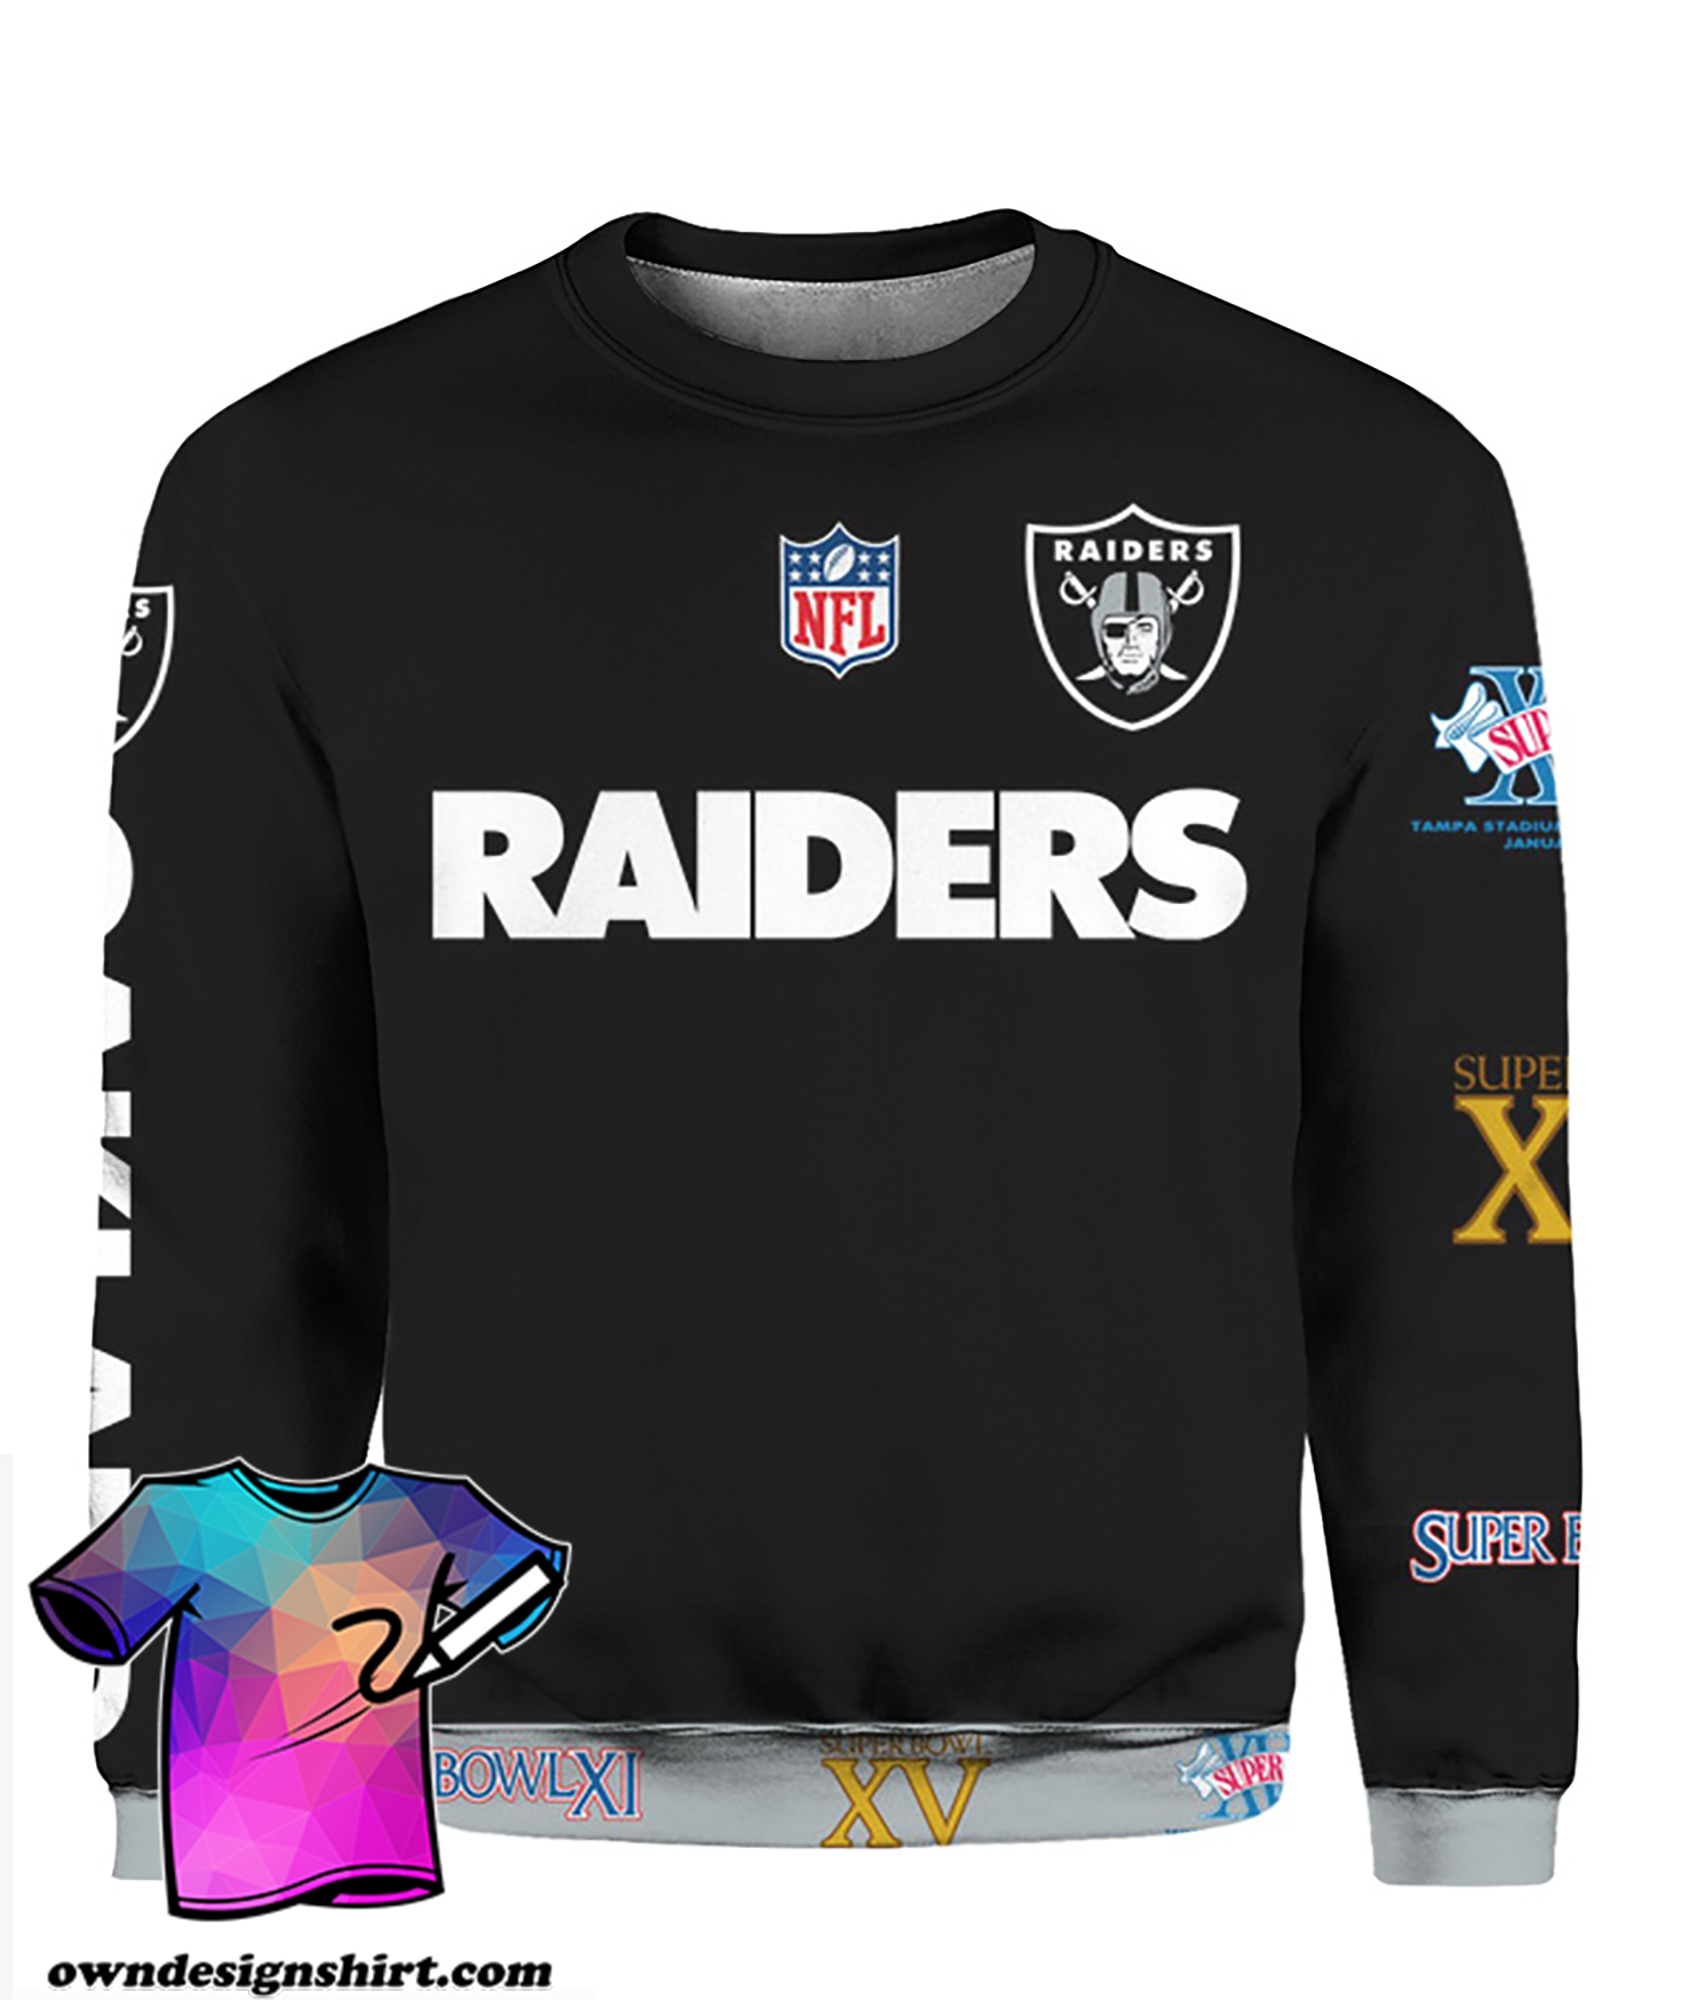 Stand for the flag kneel for the cross oakland raiders all over print shirt